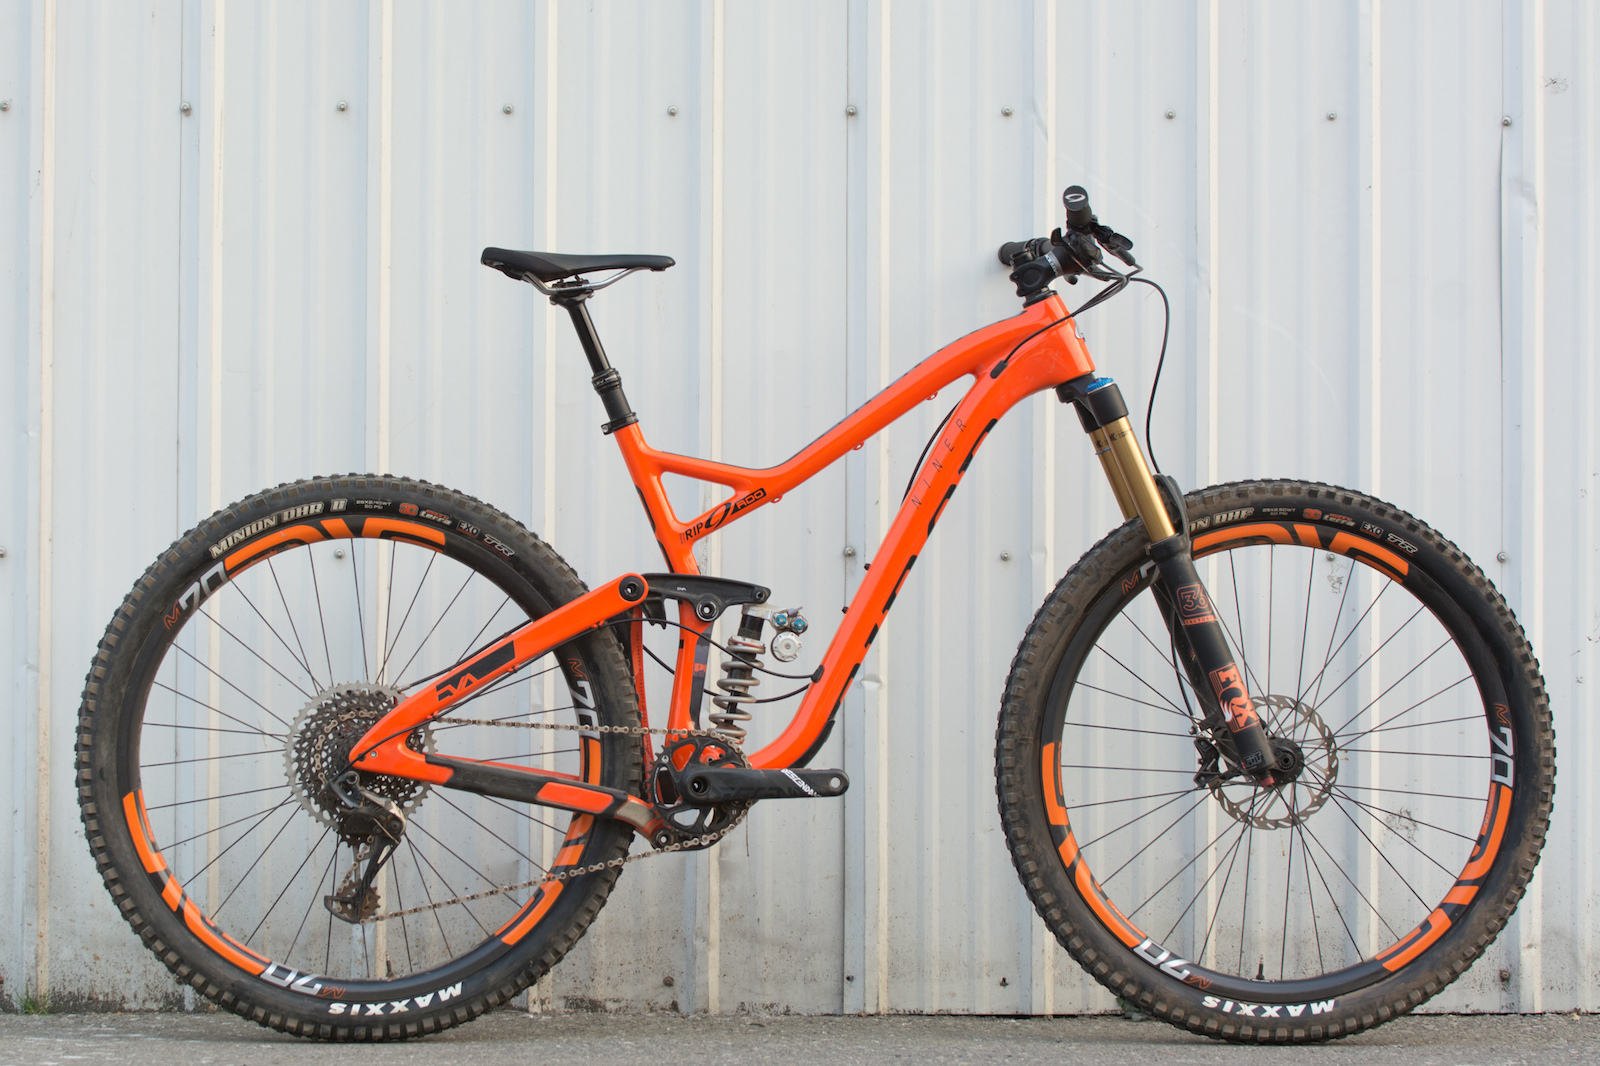 2cd450267f0 Niner Rip 9 RDO Push Edition - Review - Pinkbike